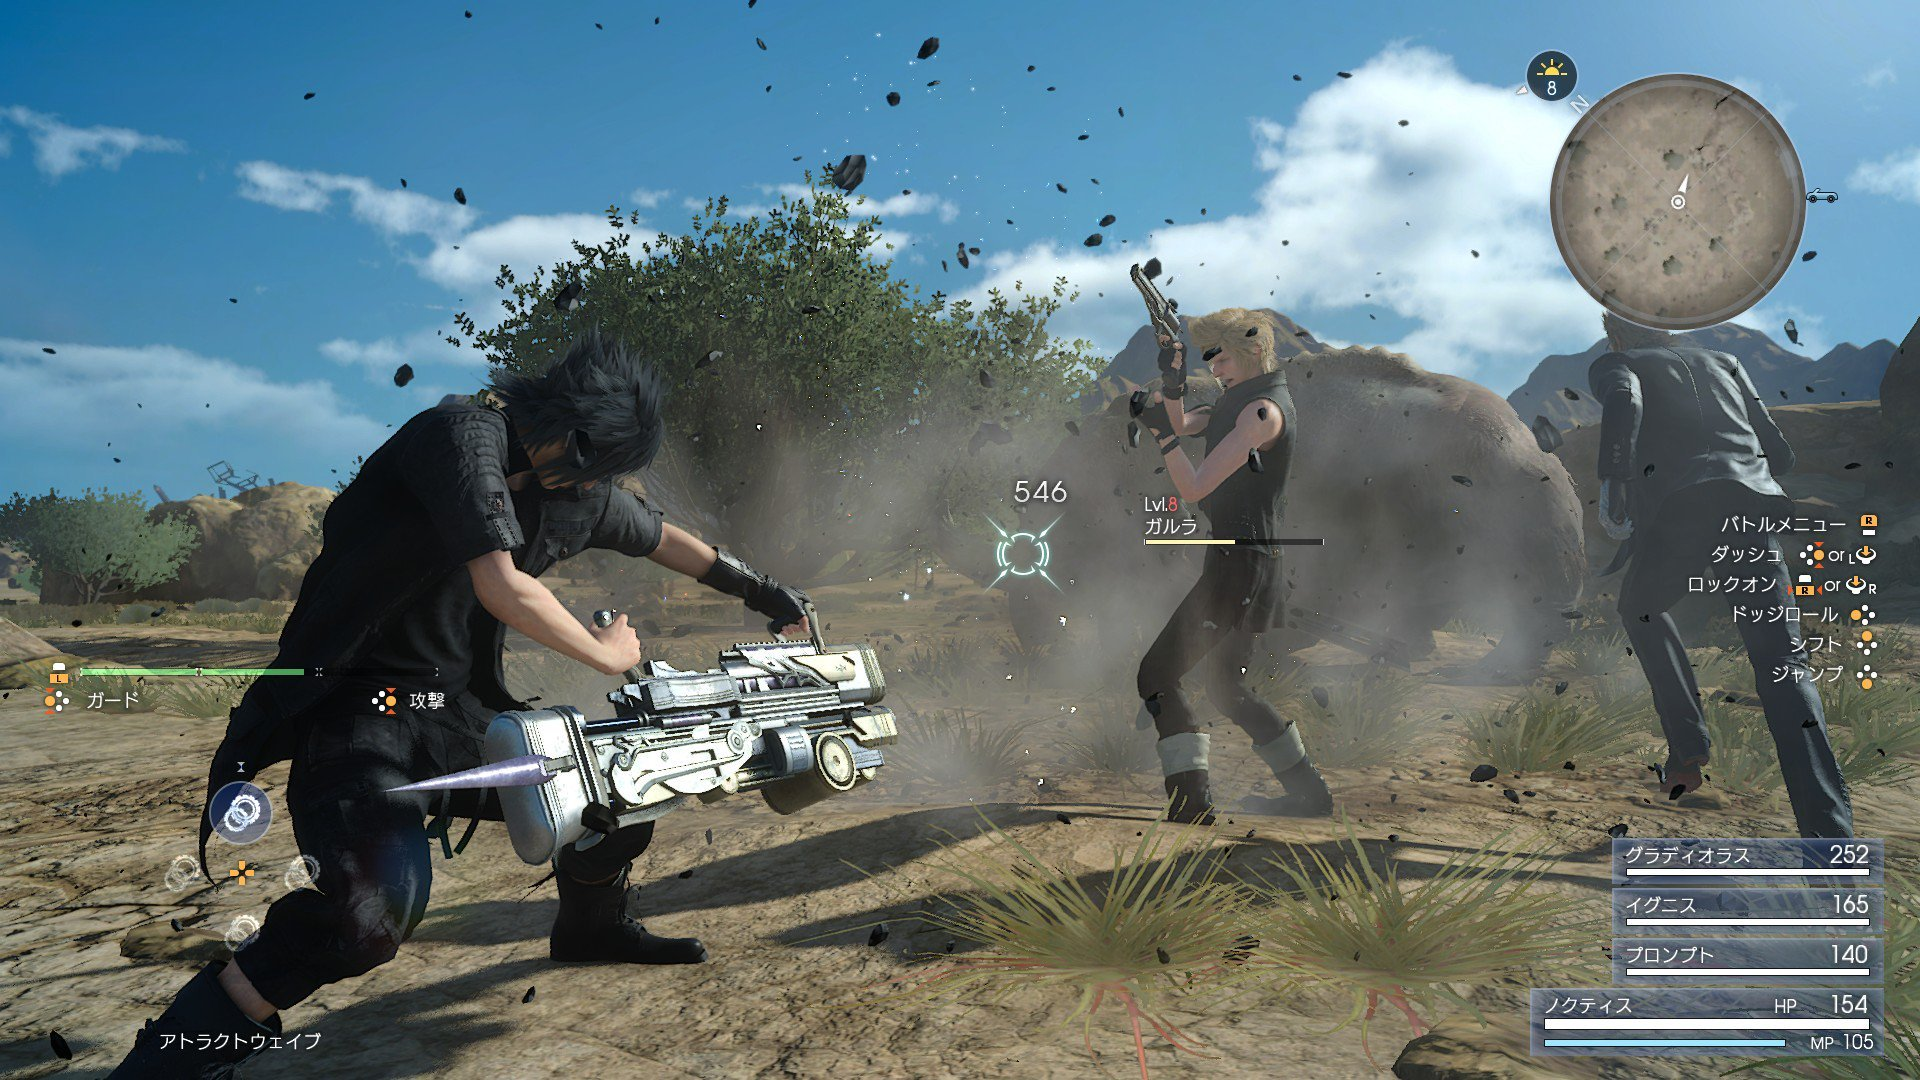 Ff7 Wallpaper Hd Here S The Tgs Final Fantasy 15 Trailer Including